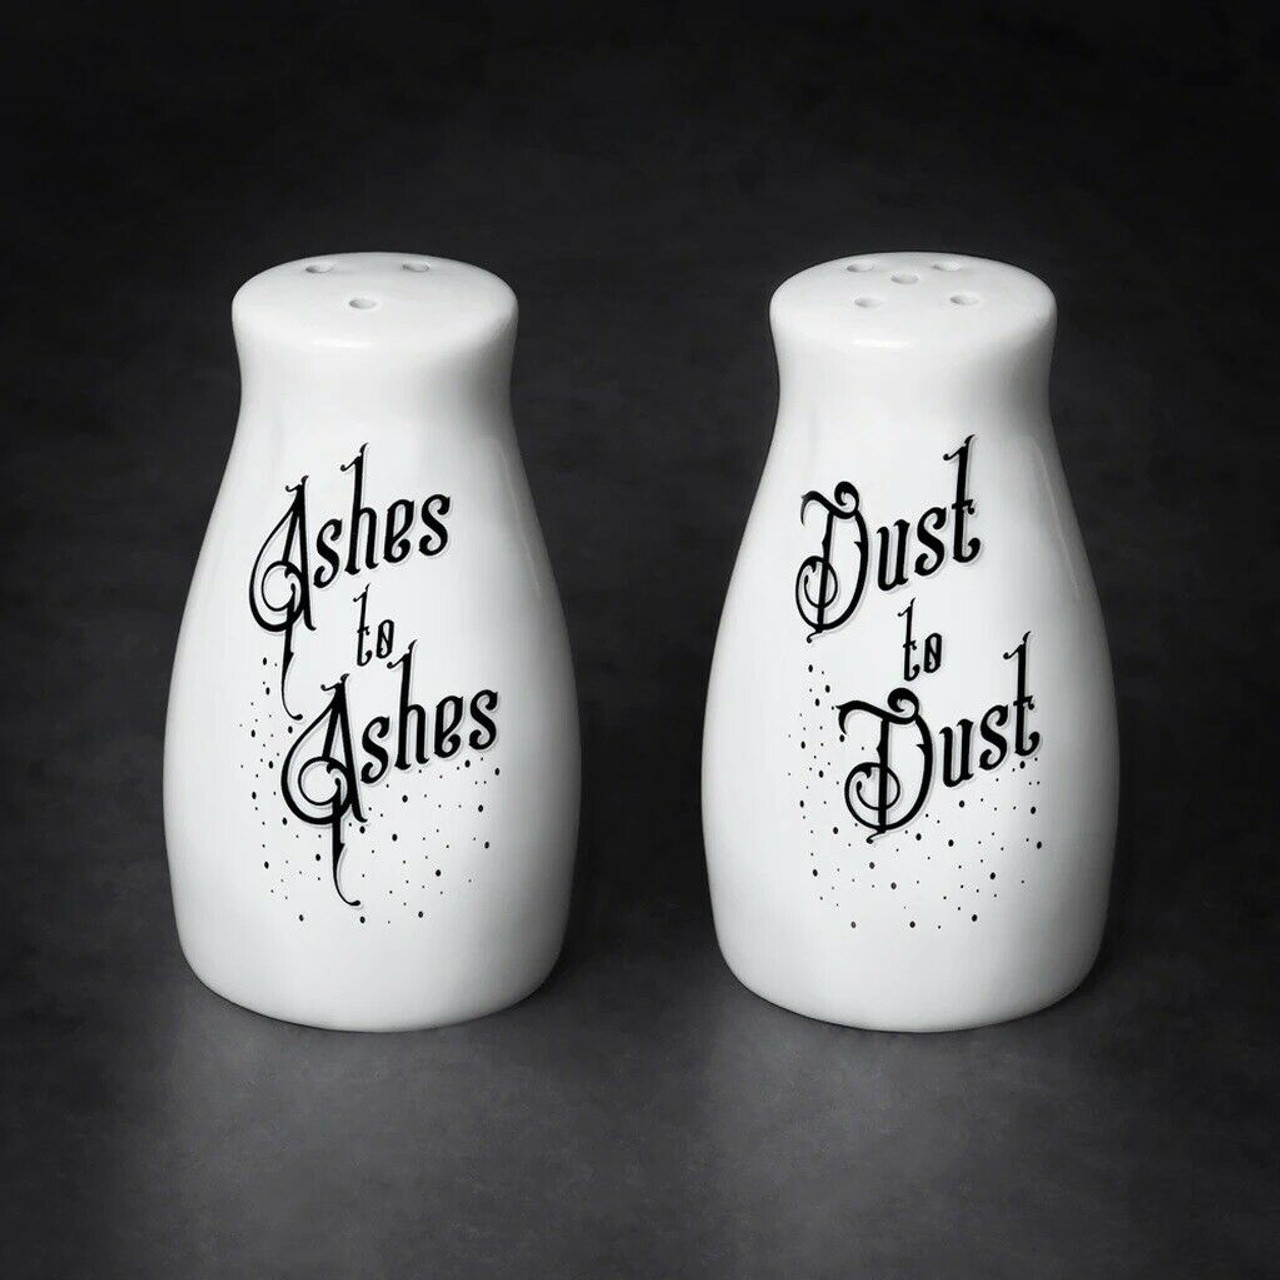 Alchemy Of England Goth Ashes To Ashes Dust To Dust Salt Pepper Shaker Set Mrsp2 Fearless Apparel